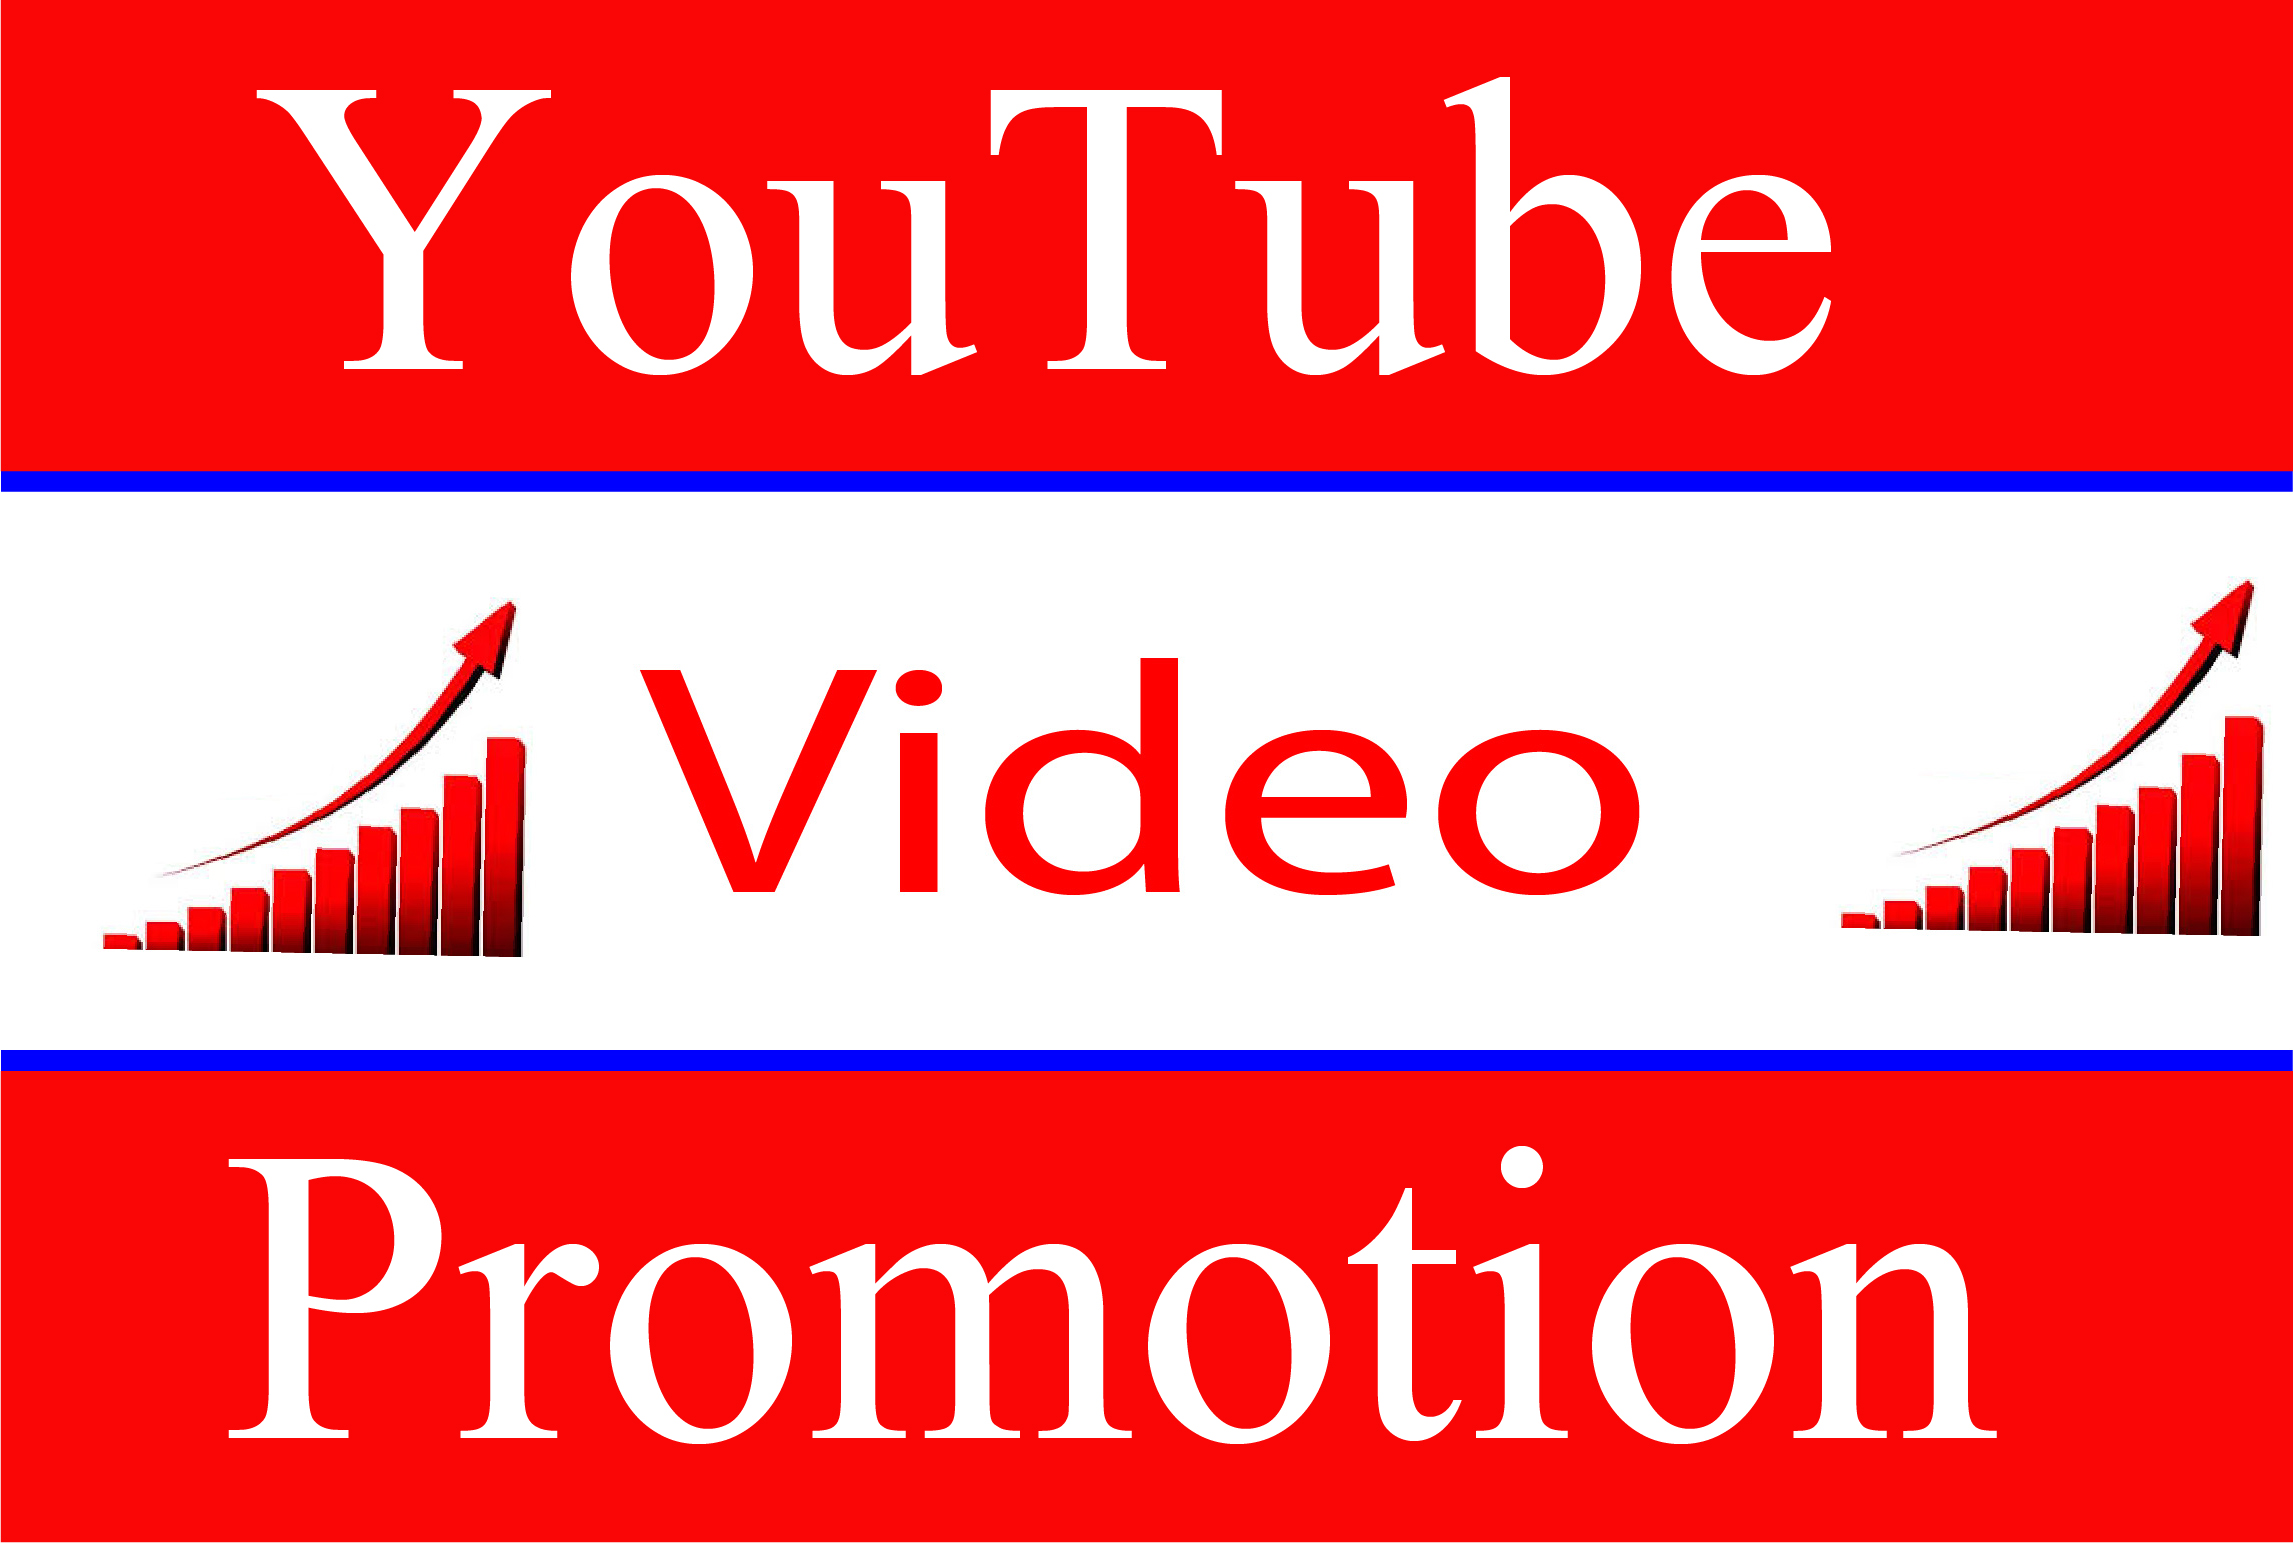 YouTube Video High Quality Promotion & Social Media Audience